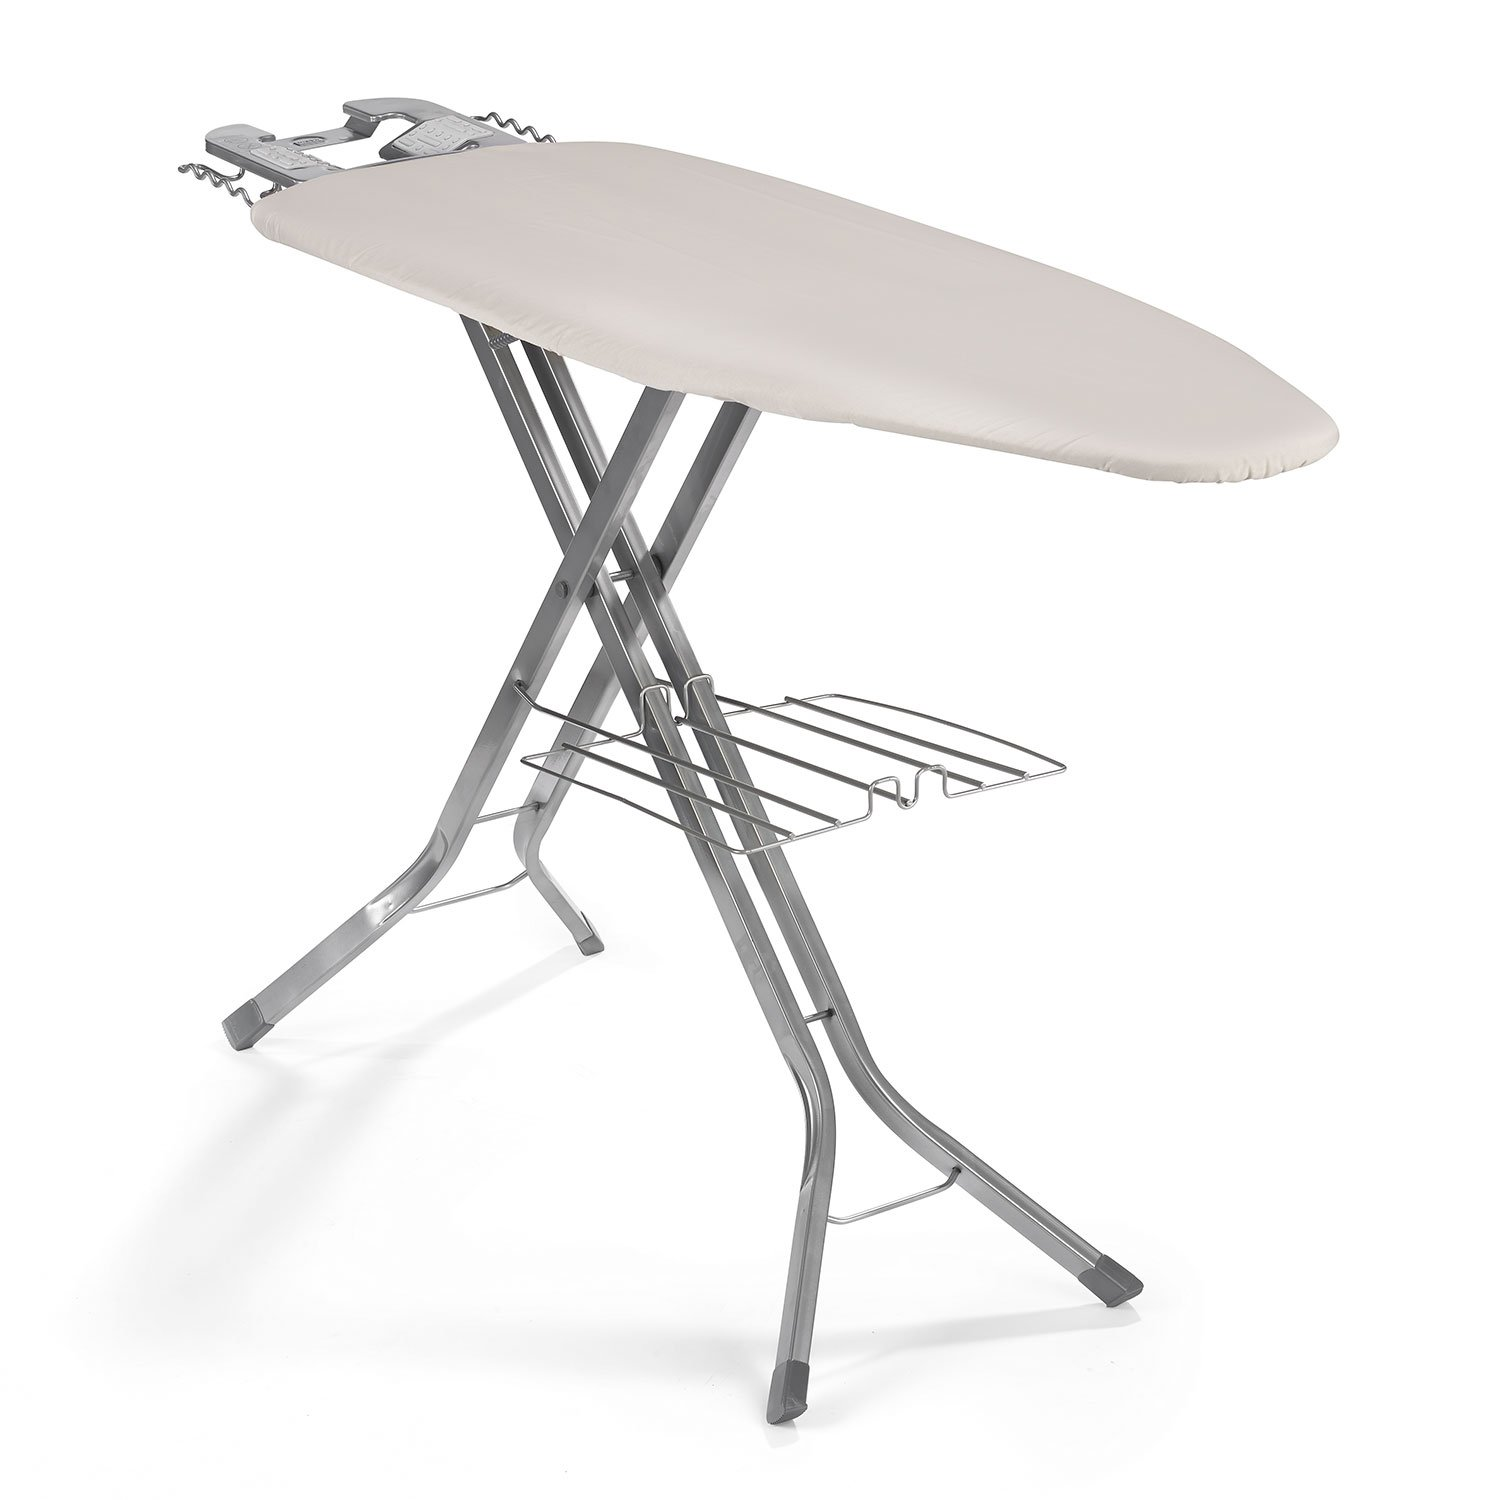 Polder IB-5119RM Oversized 51'' x 19'' Ultimate Ironing Board Station with Built-in Iron Rest, Garment Shelf, Thick Pad and 100% Cotton Cover, Natural